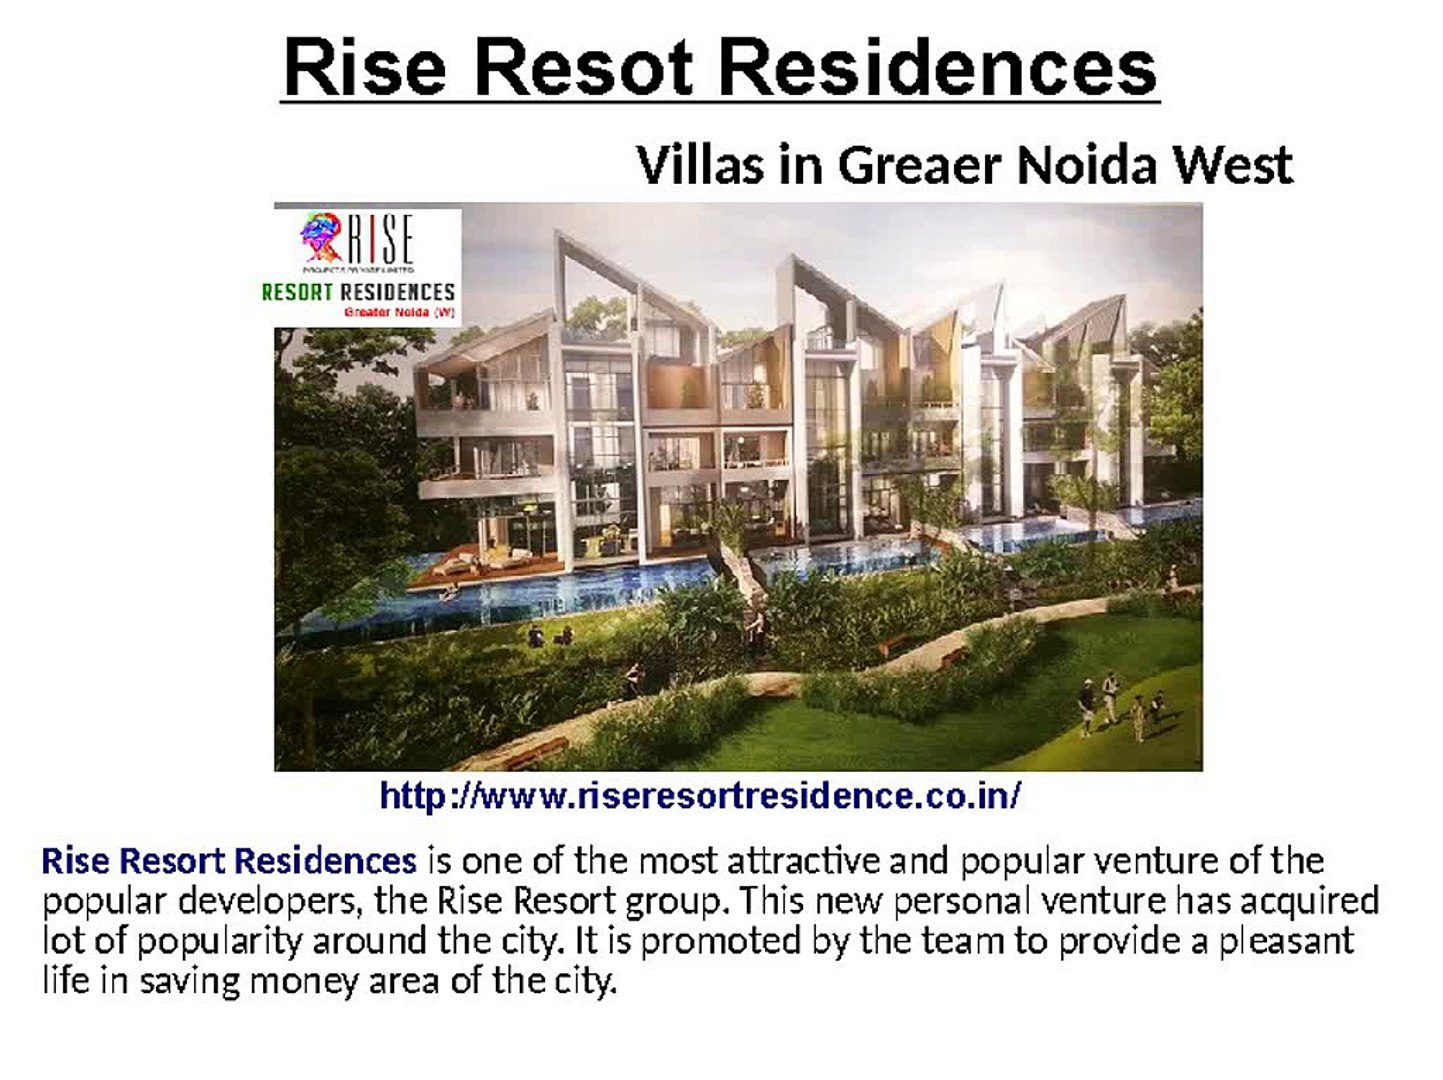 rise resort residences rise resort residences villas video dailymotion dailymotion